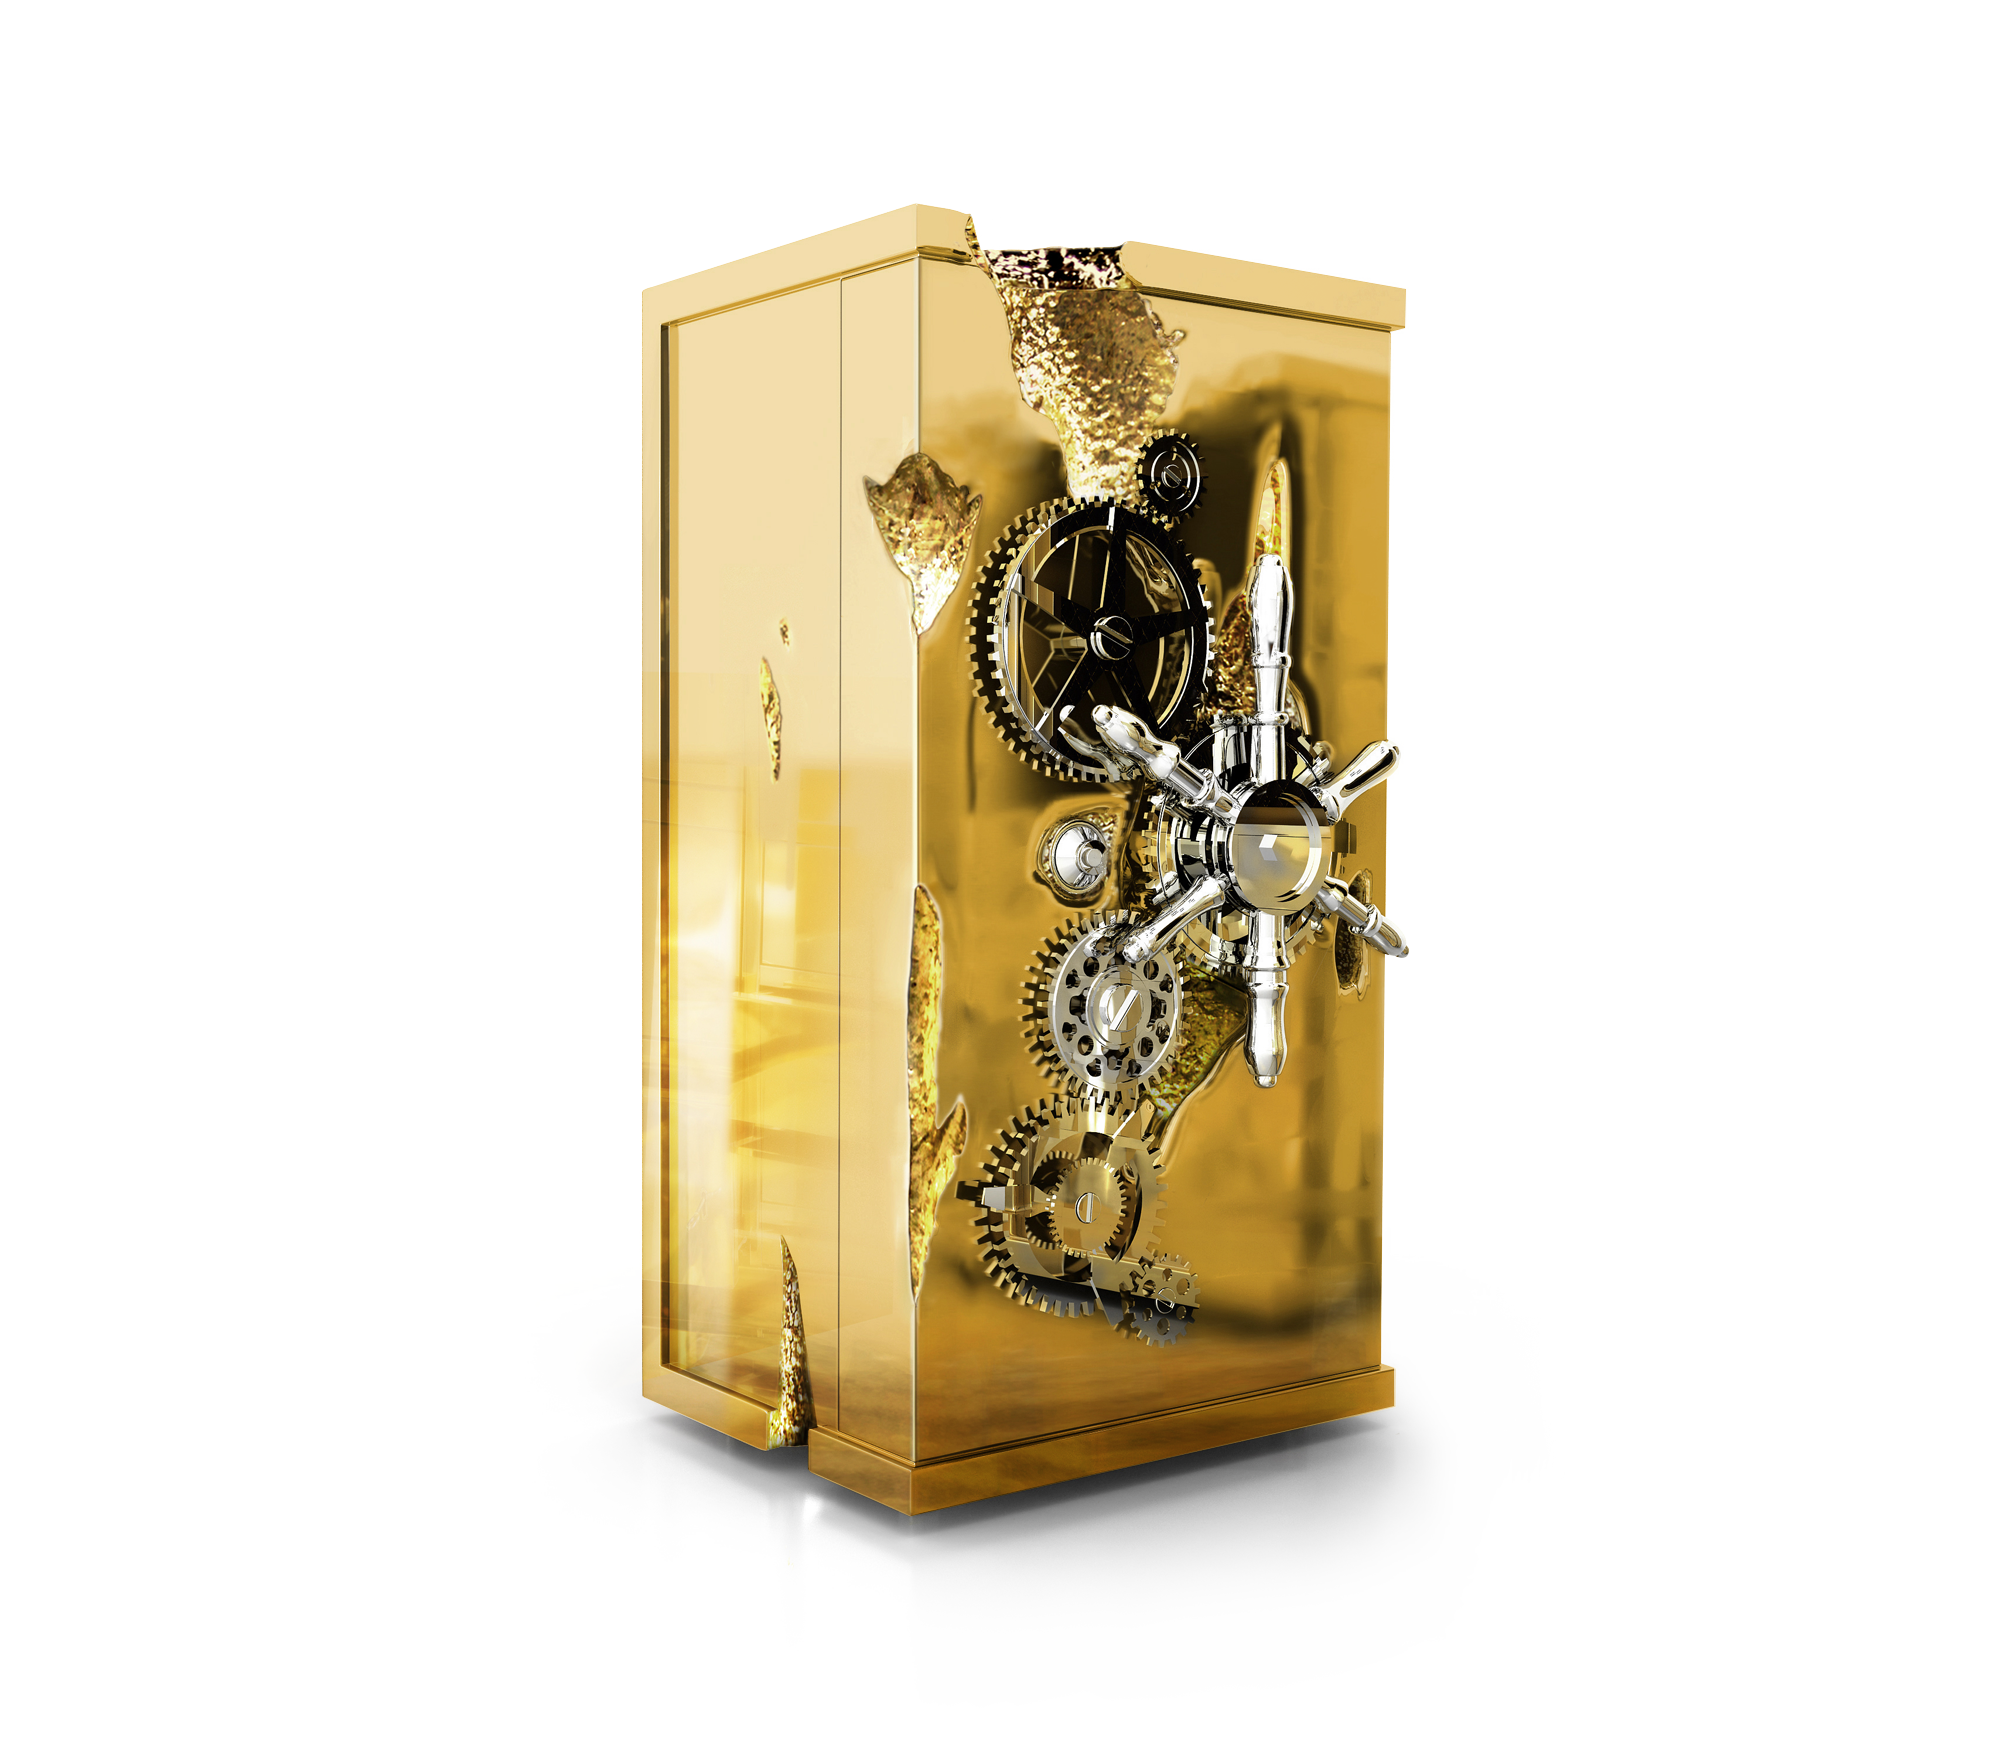 Millionaire Gold Luxury Safe by Boca do Lobo